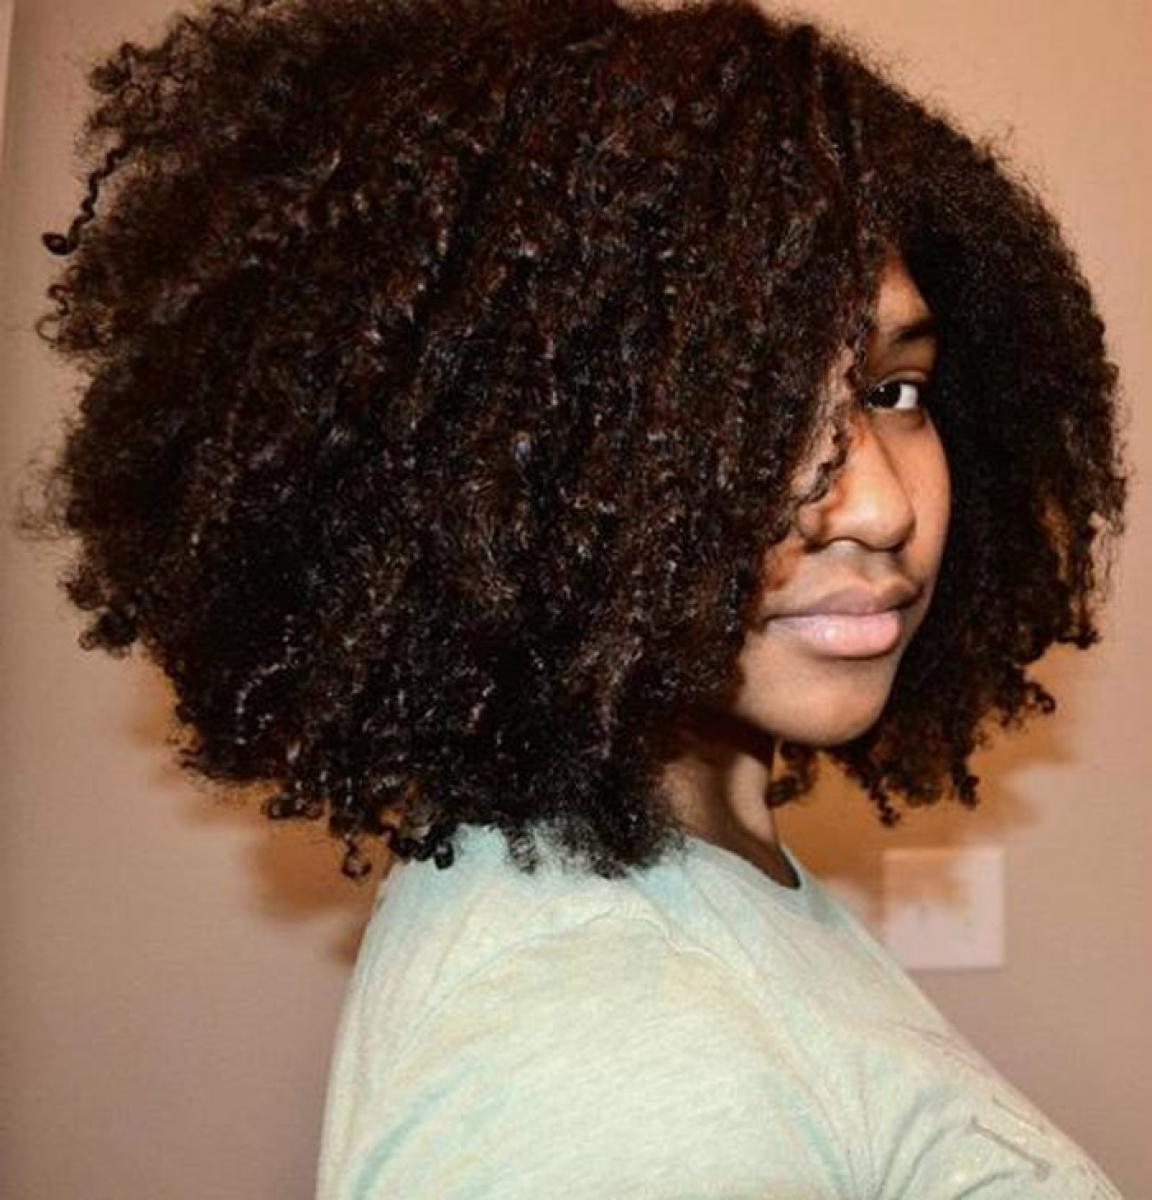 Black Natural Curly Hairstyles For Medium Length Hair Hairstyles